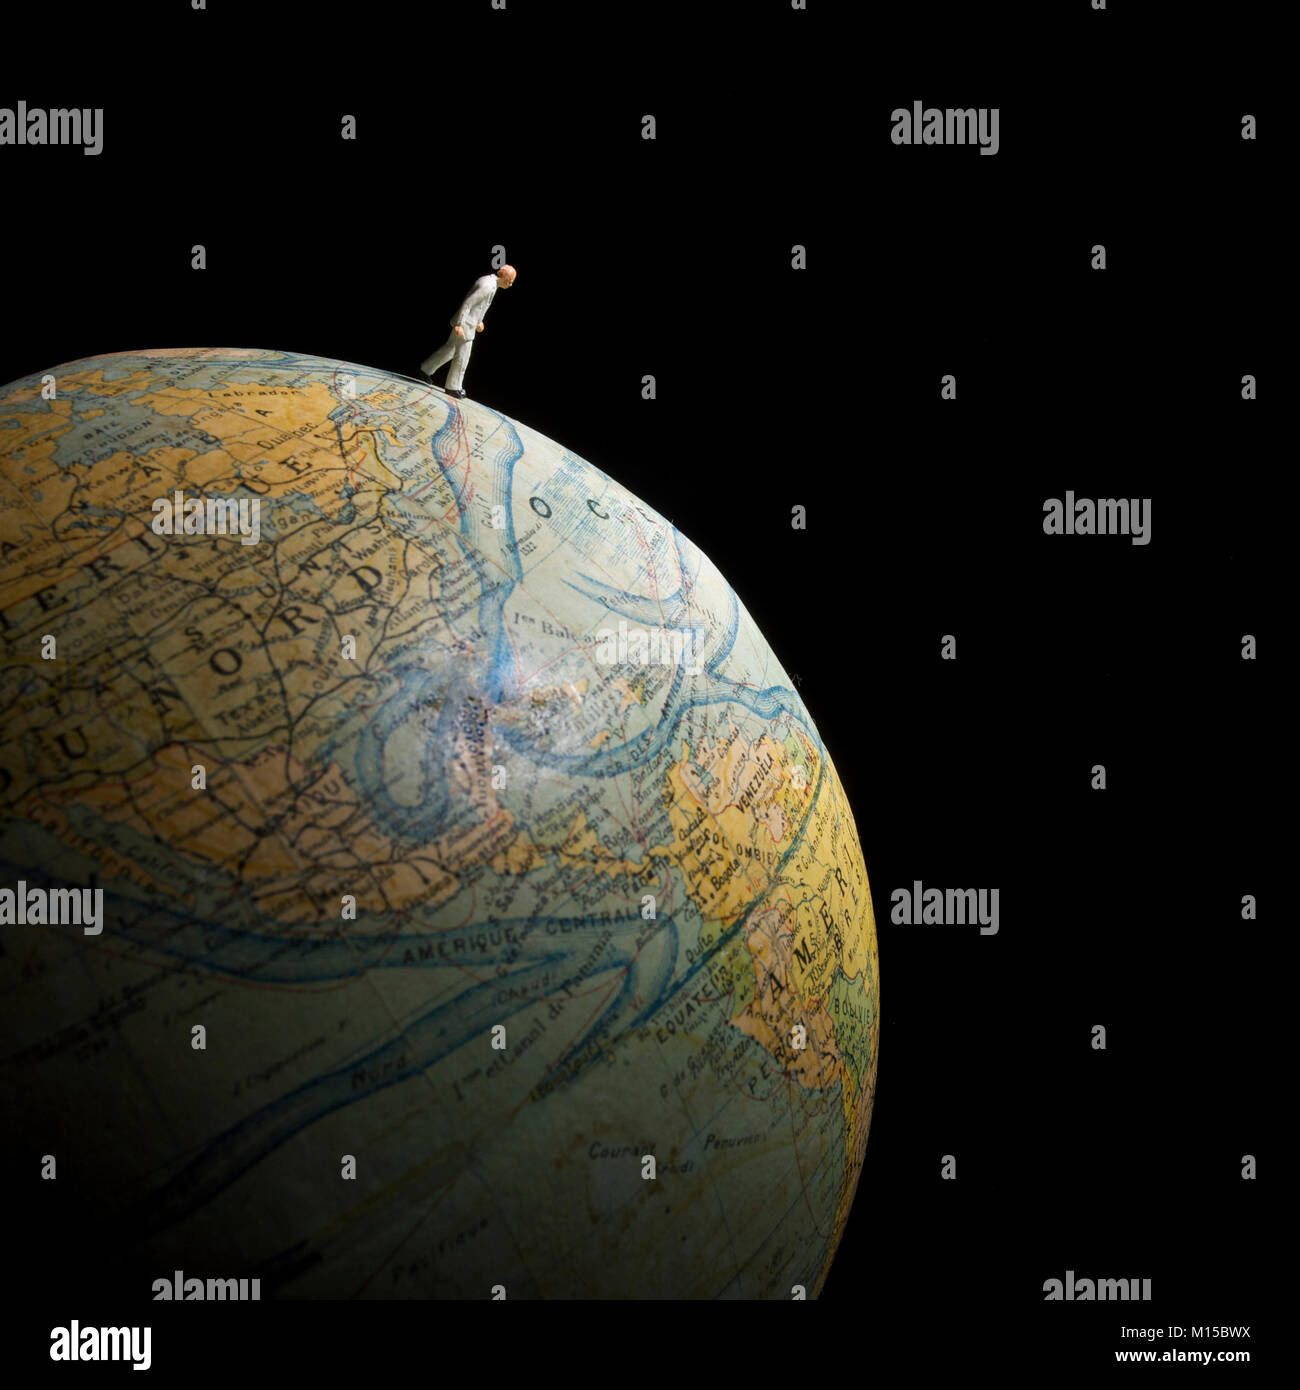 Figurine walking on globe, concept earth - Stock Image